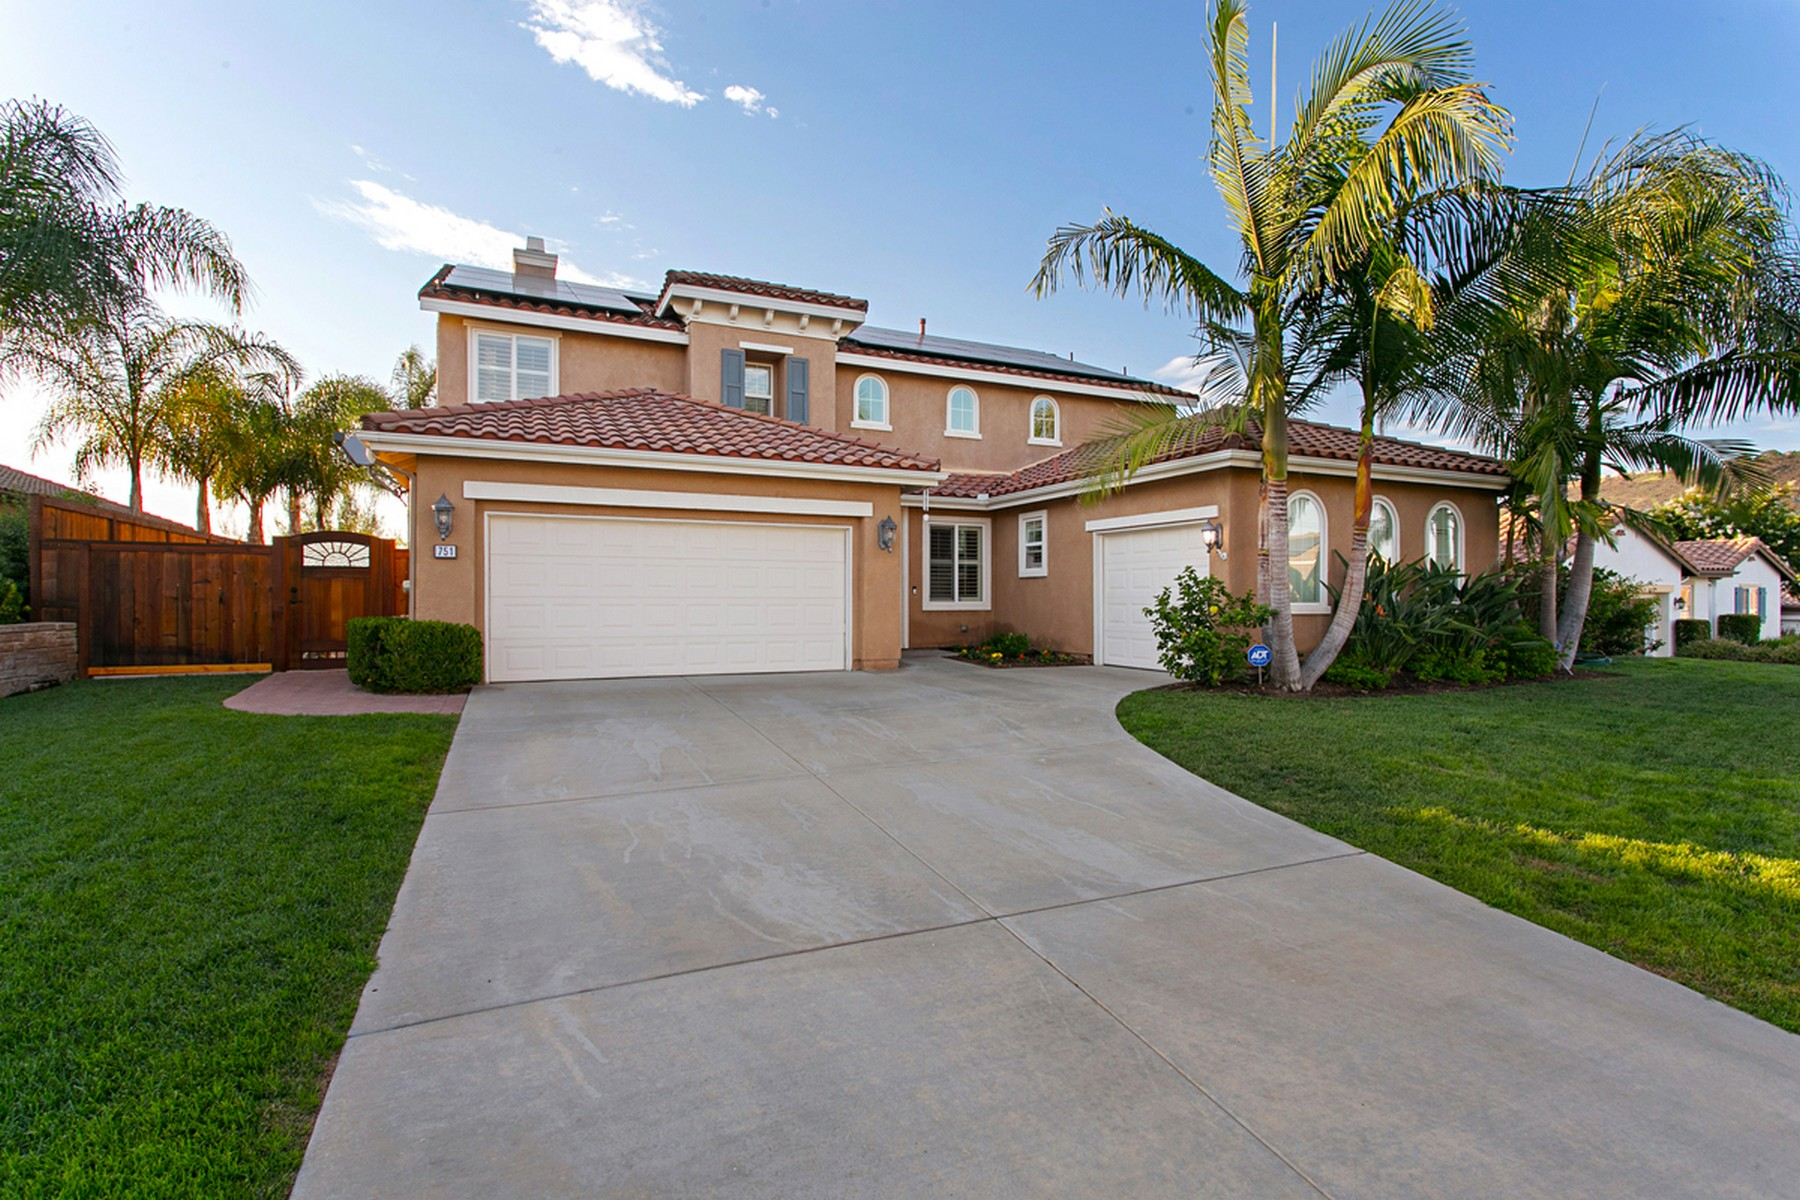 Single Family Homes for Sale at 751 Banyan Court San Marcos, California 92069 United States